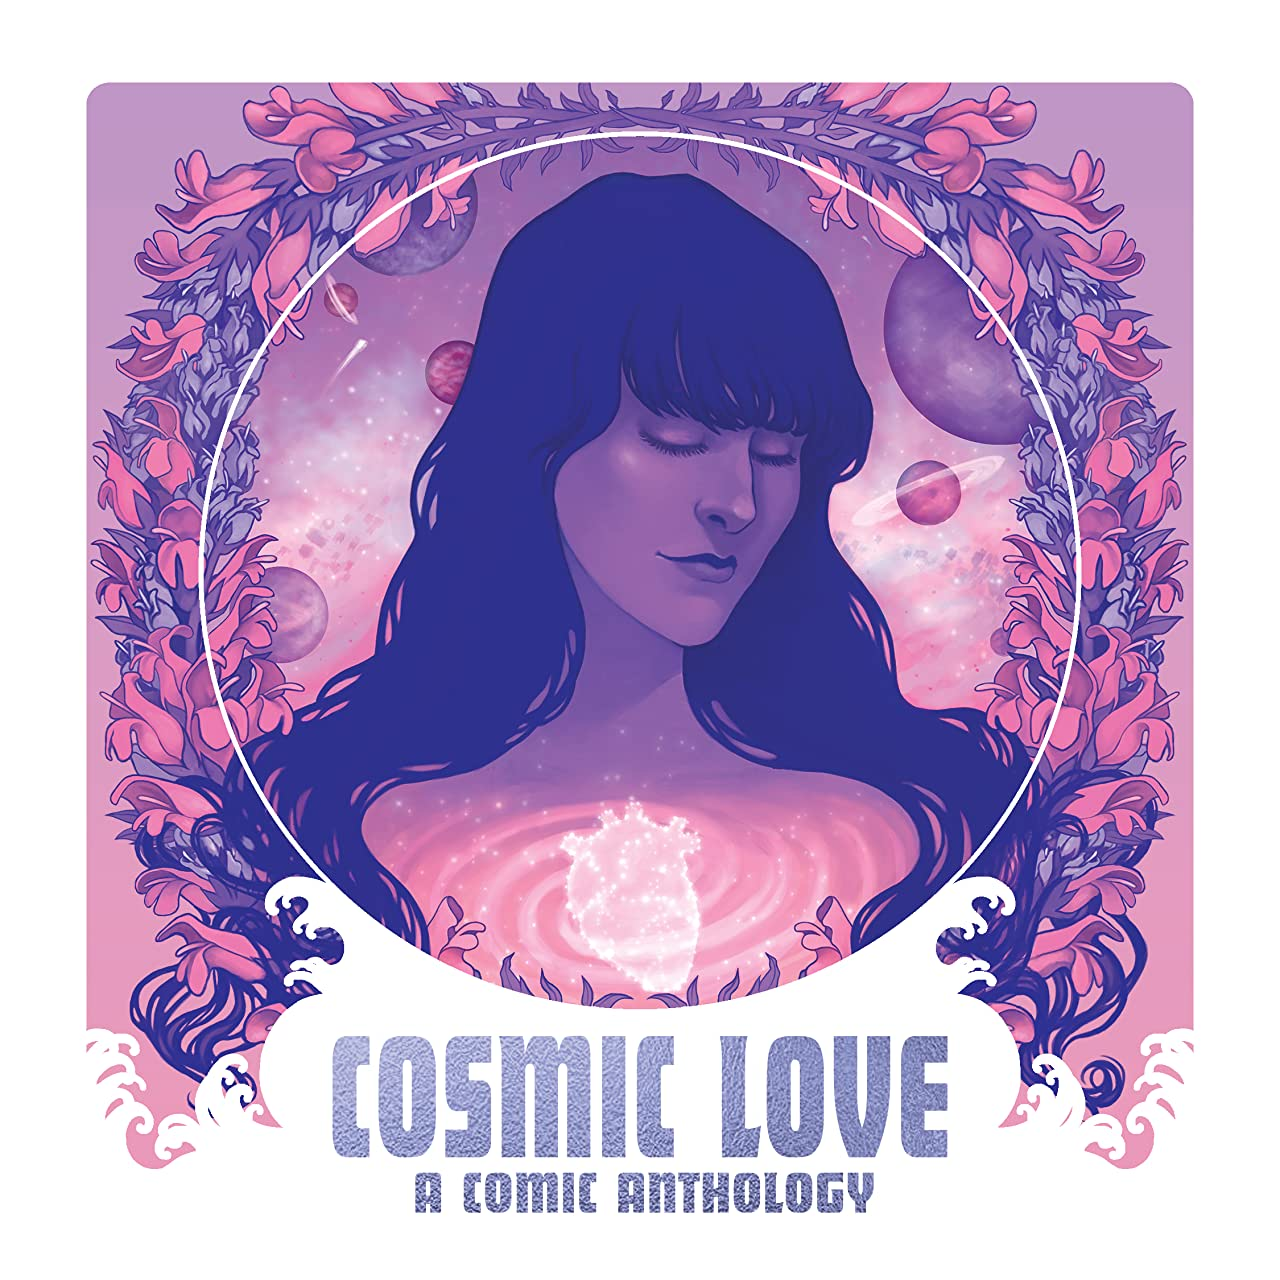 COSMIC LOVE: A comic anthology inspired by the music of Florence + the Machine